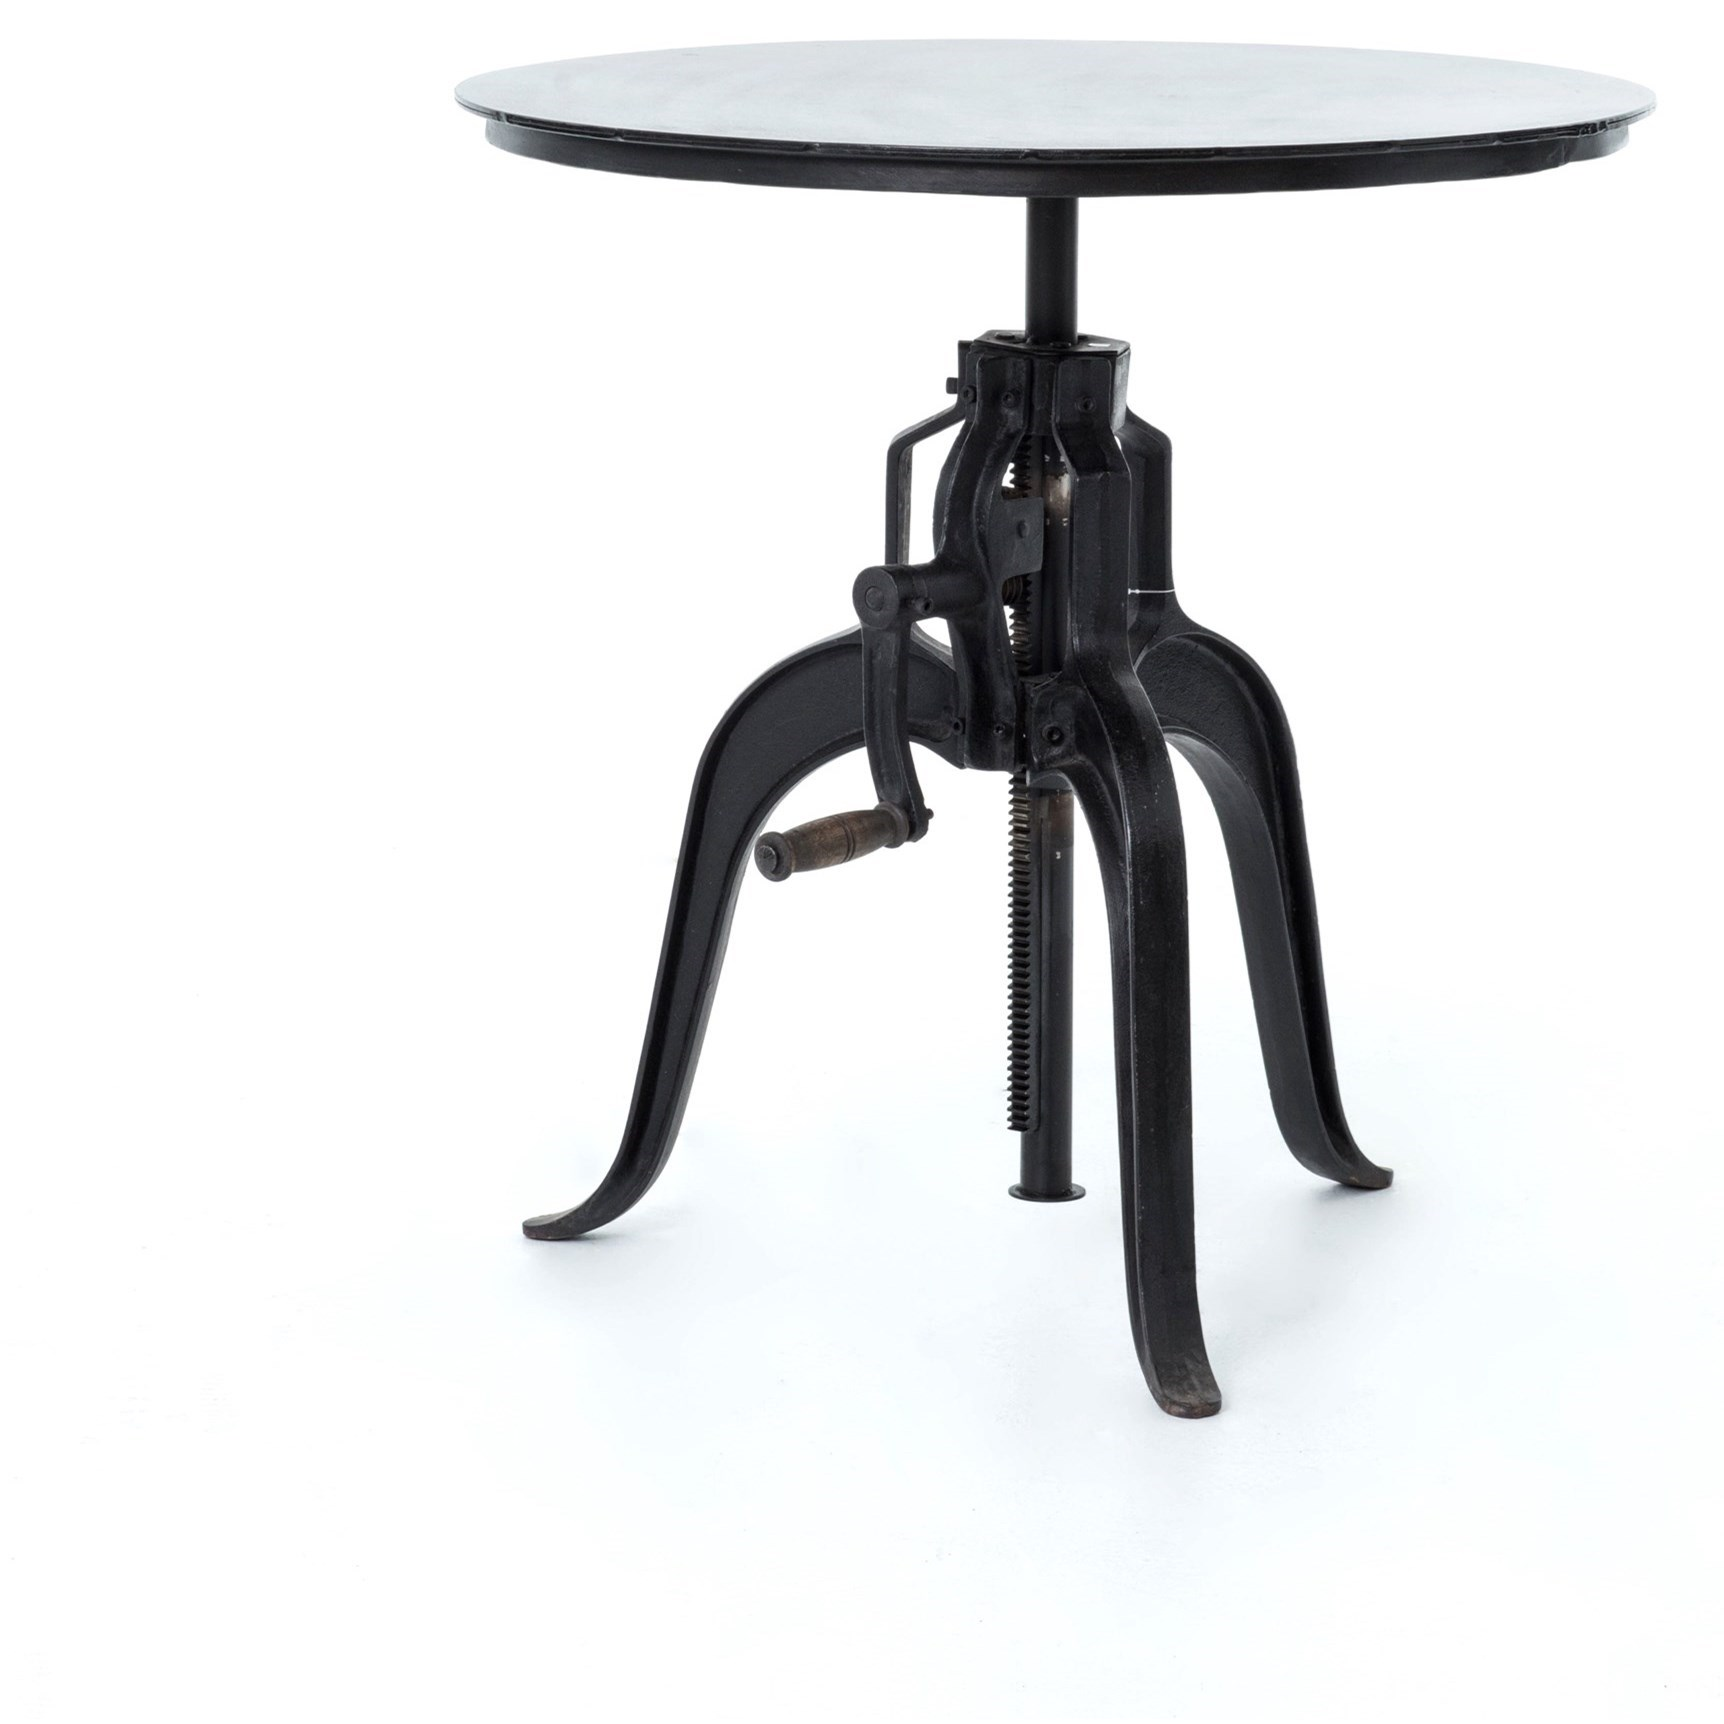 Four Hands Rockwell Adjustable Table - Item Number: I82023-213